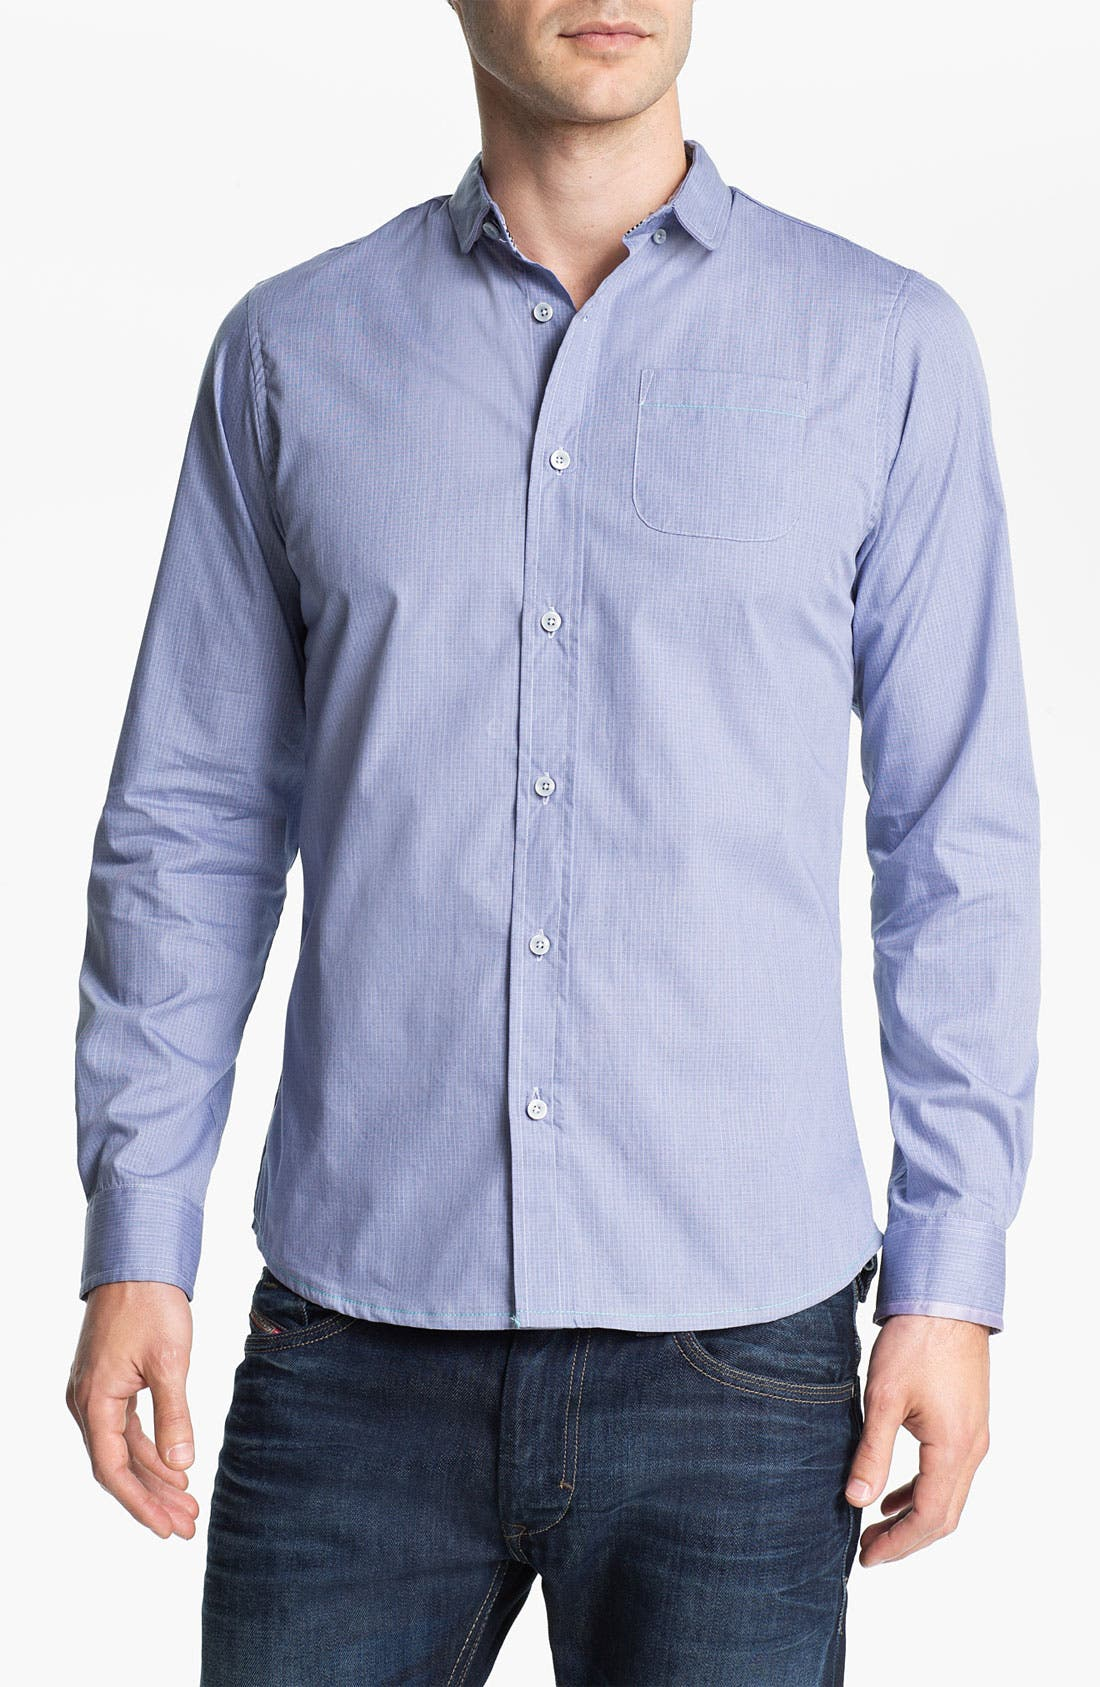 Alternate Image 1 Selected - Descendant of Thieves Check Woven Shirt